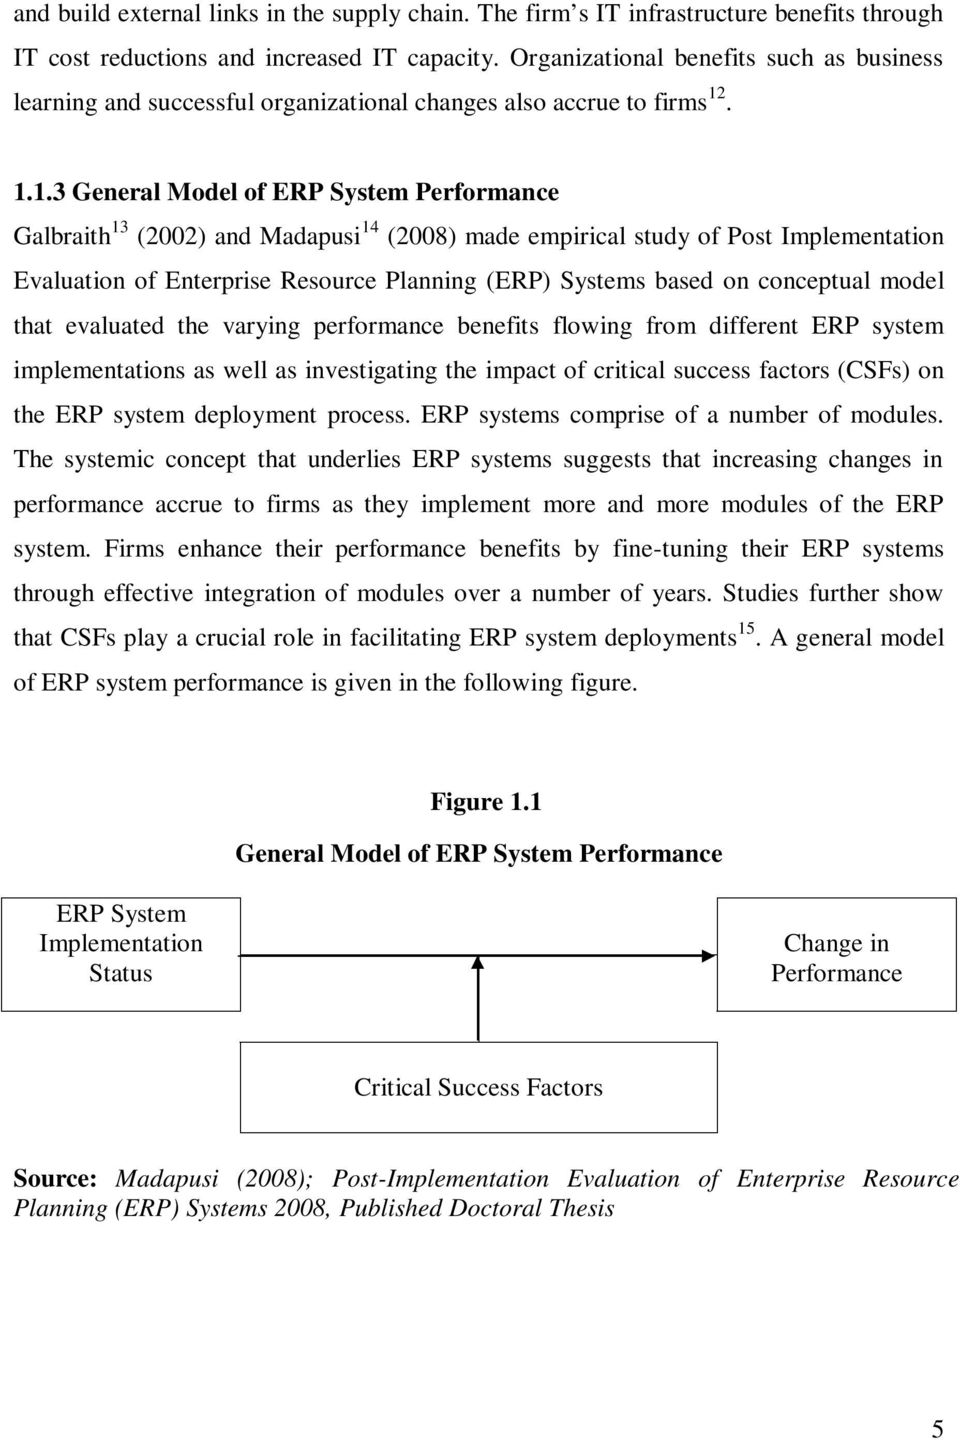 . 1.1.3 General Model of ERP System Performance Galbraith 13 (2002) and Madapusi 14 (2008) made empirical study of Post Implementation Evaluation of Enterprise Resource Planning (ERP) Systems based